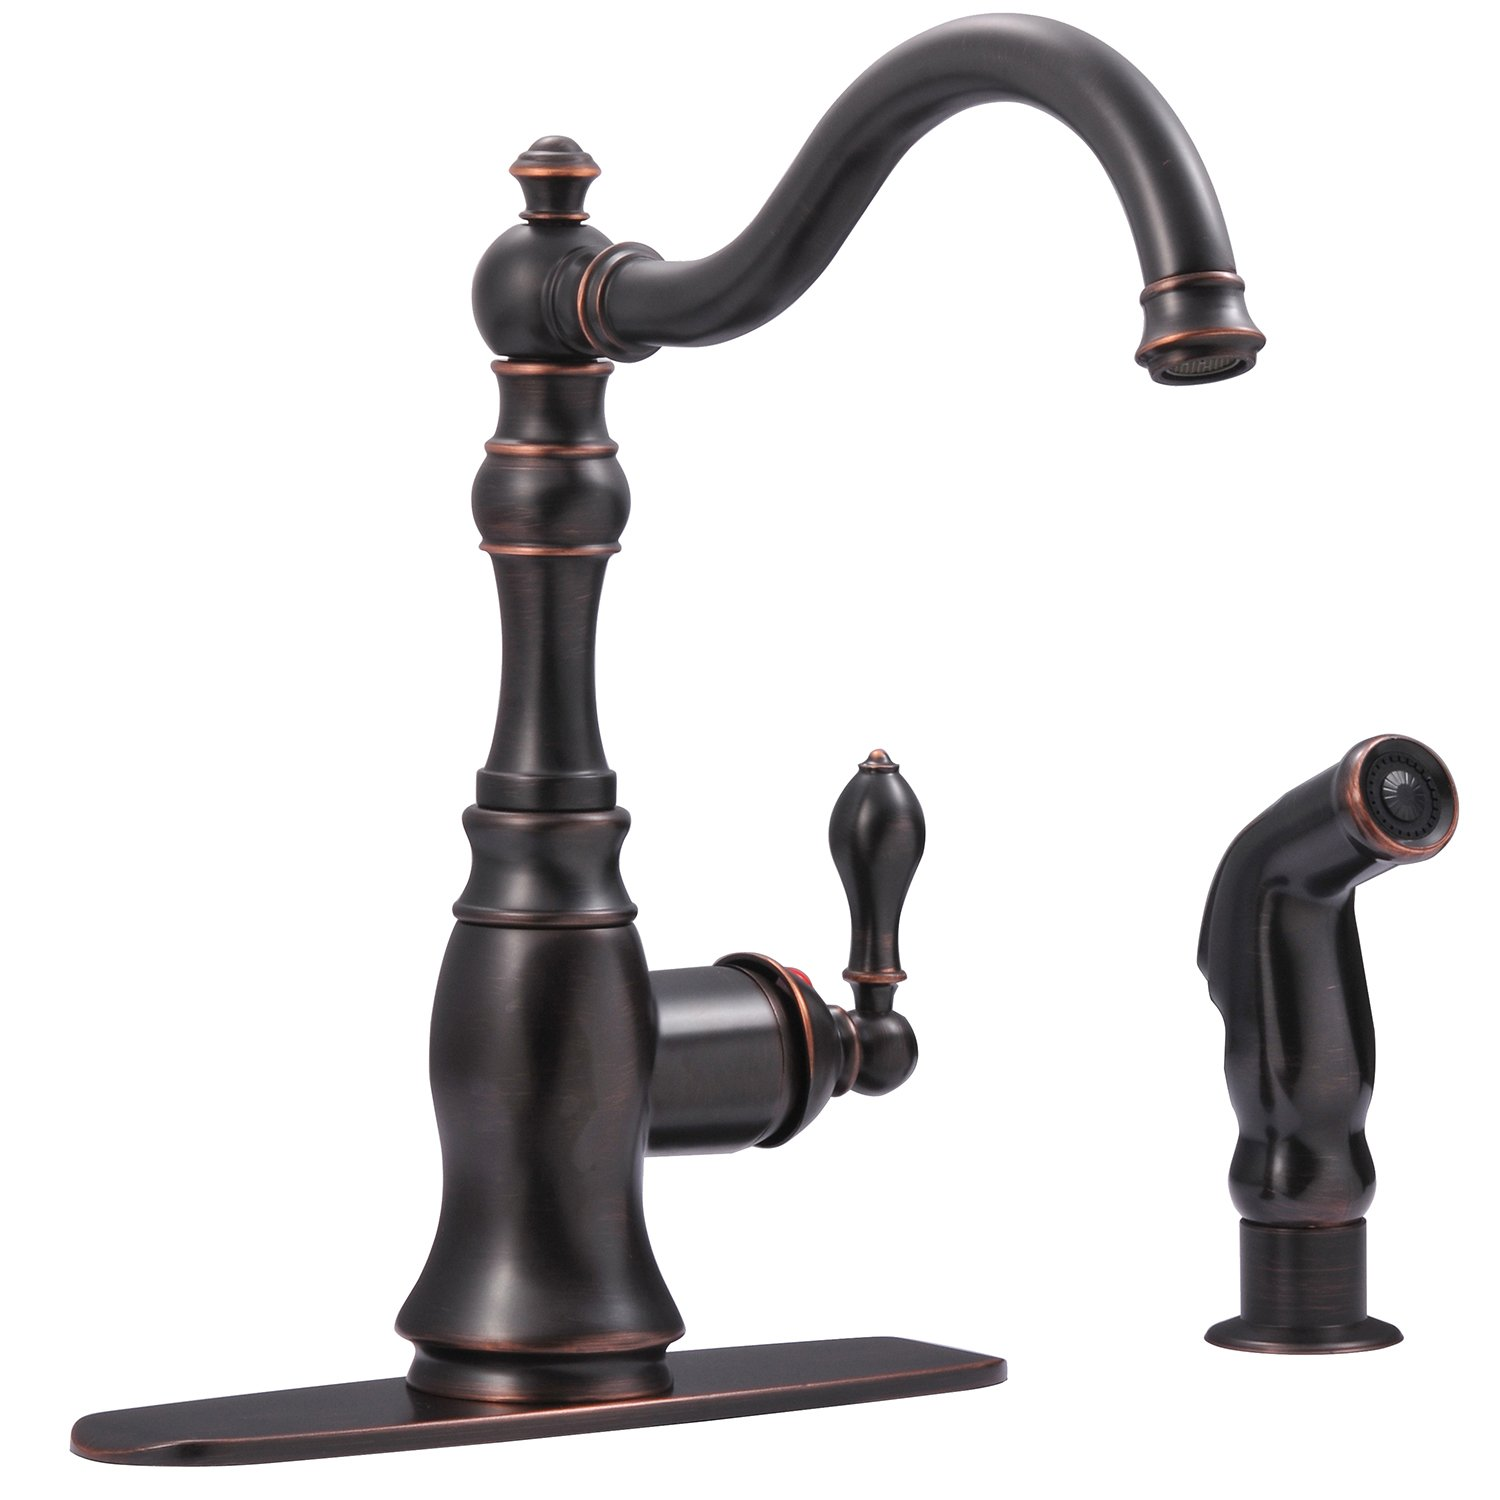 Ultra Faucets UF Signature Collection Single Handle Kitchen